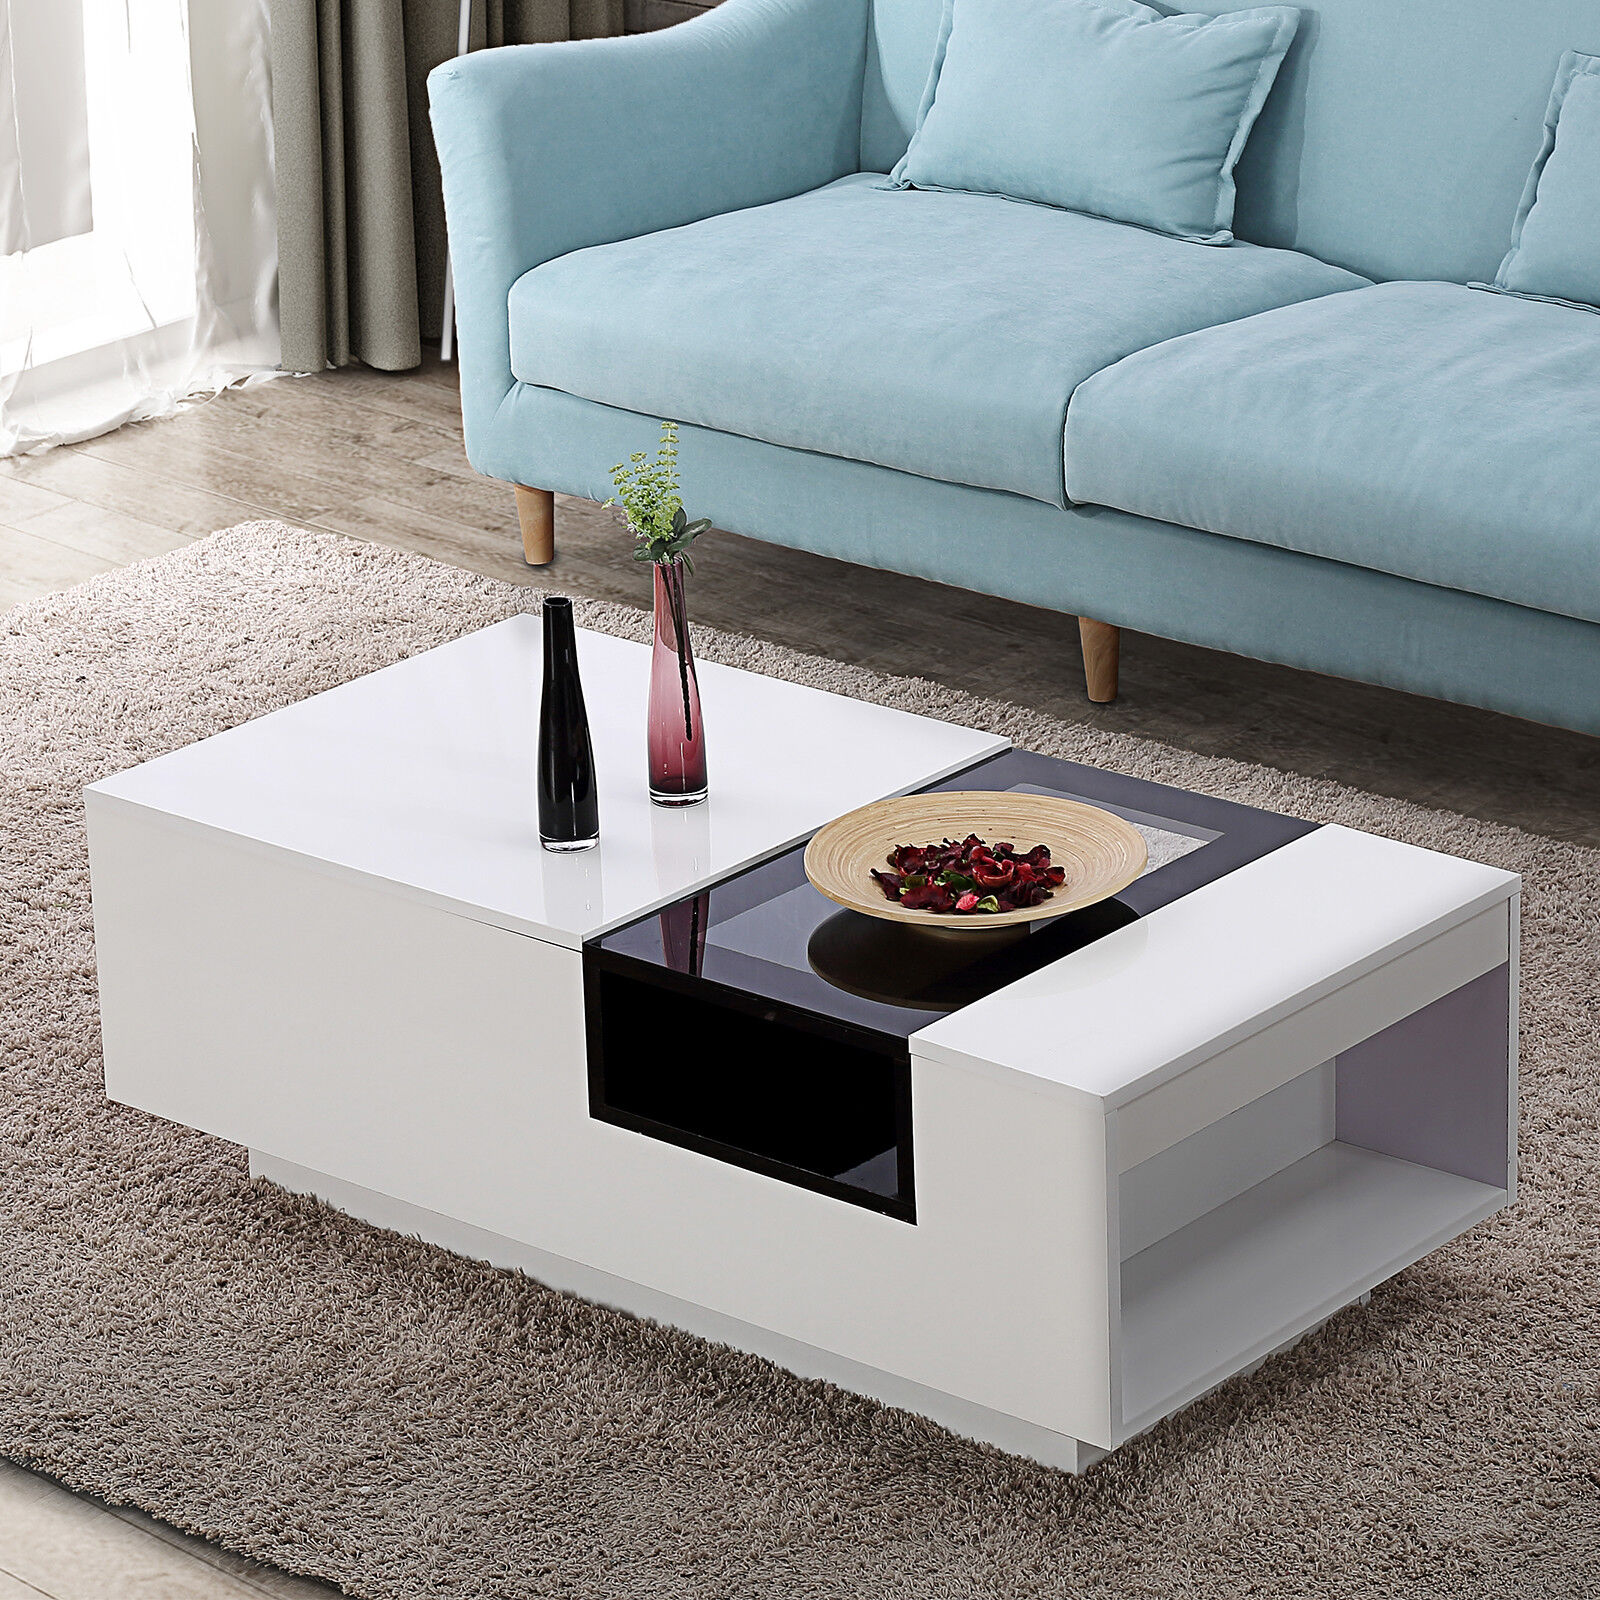 High gloss white and black glass two tone coffee table center with side storage